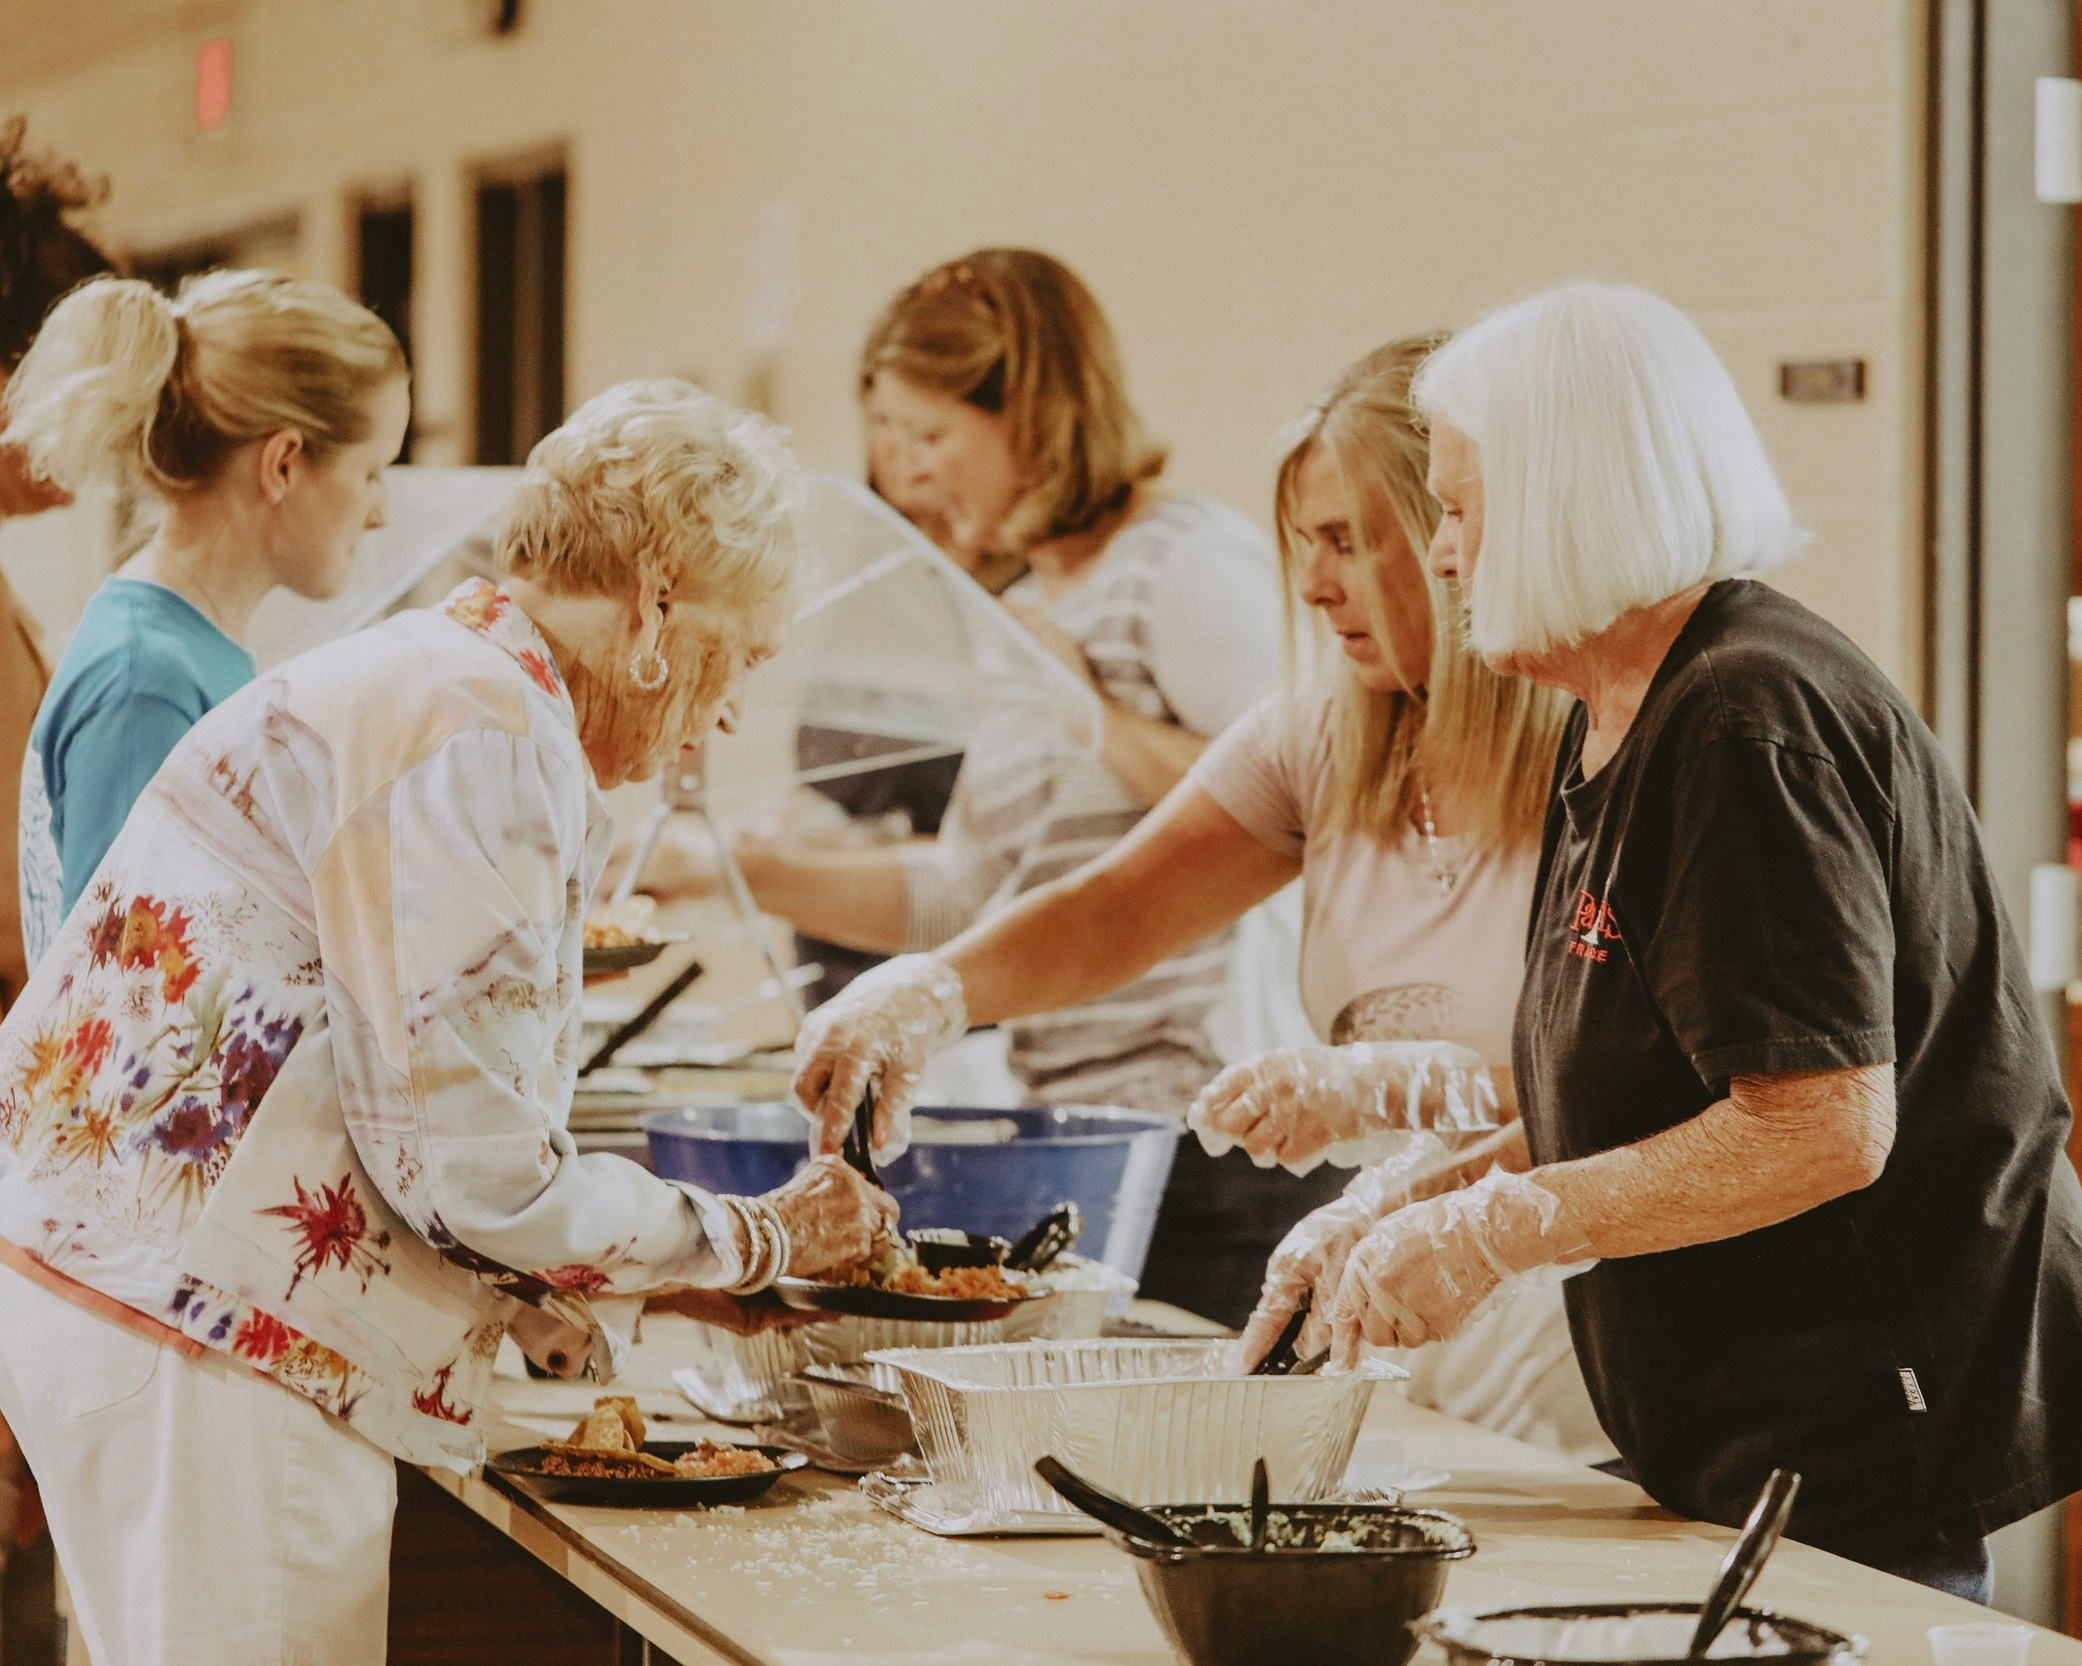 Family Dinner | 5-6PM - Join us in the Family Life Center for a delicious meal complete with homemade desserts! Dinner costs $3/child & $6/adult.Your first time at Family Dinner is free!